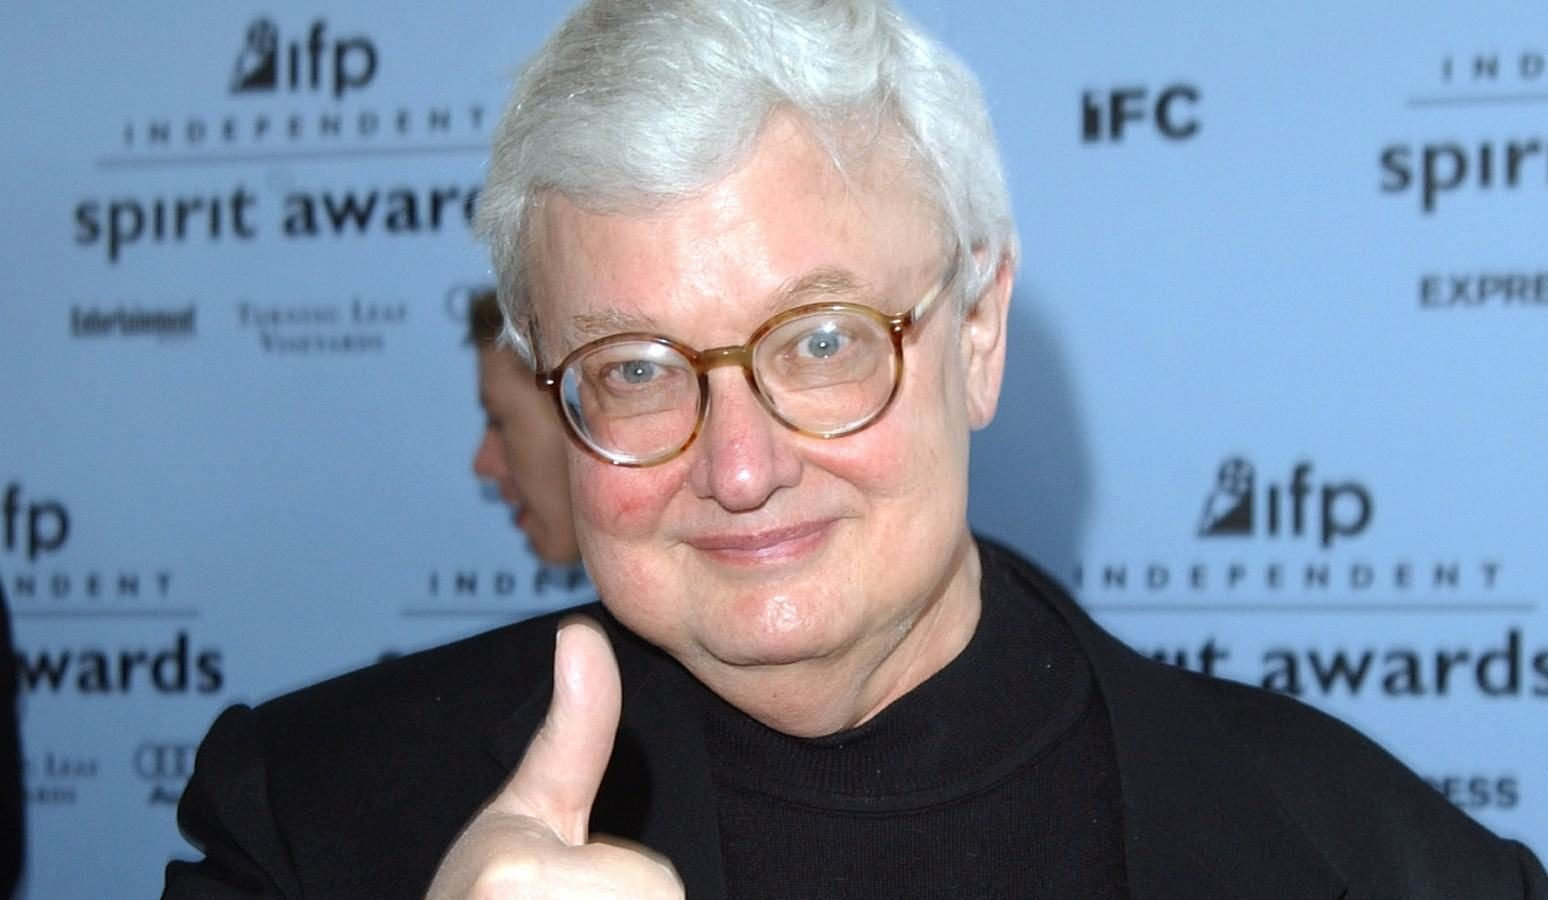 141218170410 roger ebert thumb cfb 2 full 169 e1548337127967 The 30 Most Haunting Final Tweets By Celebrities